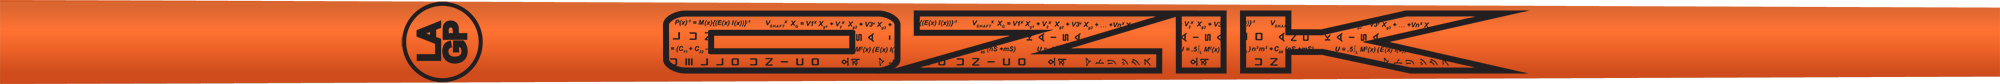 Ozik Red Tie: Neon Orange Black Satin - Wood 60 R